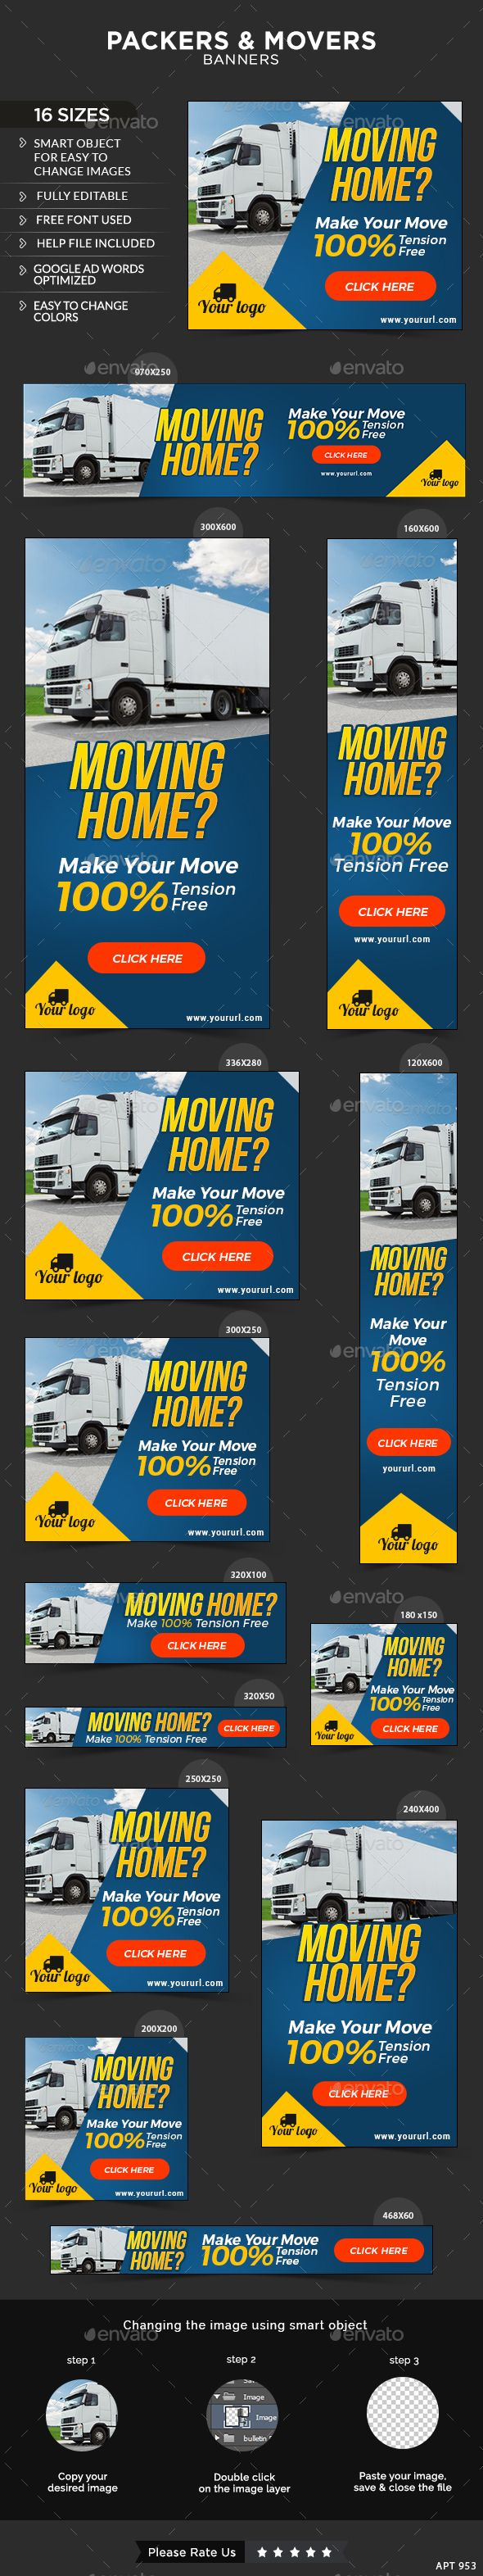 Packers & Movers Service Banners — Photoshop PSD #delivery #move • Available here → https://graphicriver.net/item/packers-movers-service-banners/13376528?ref=pxcr